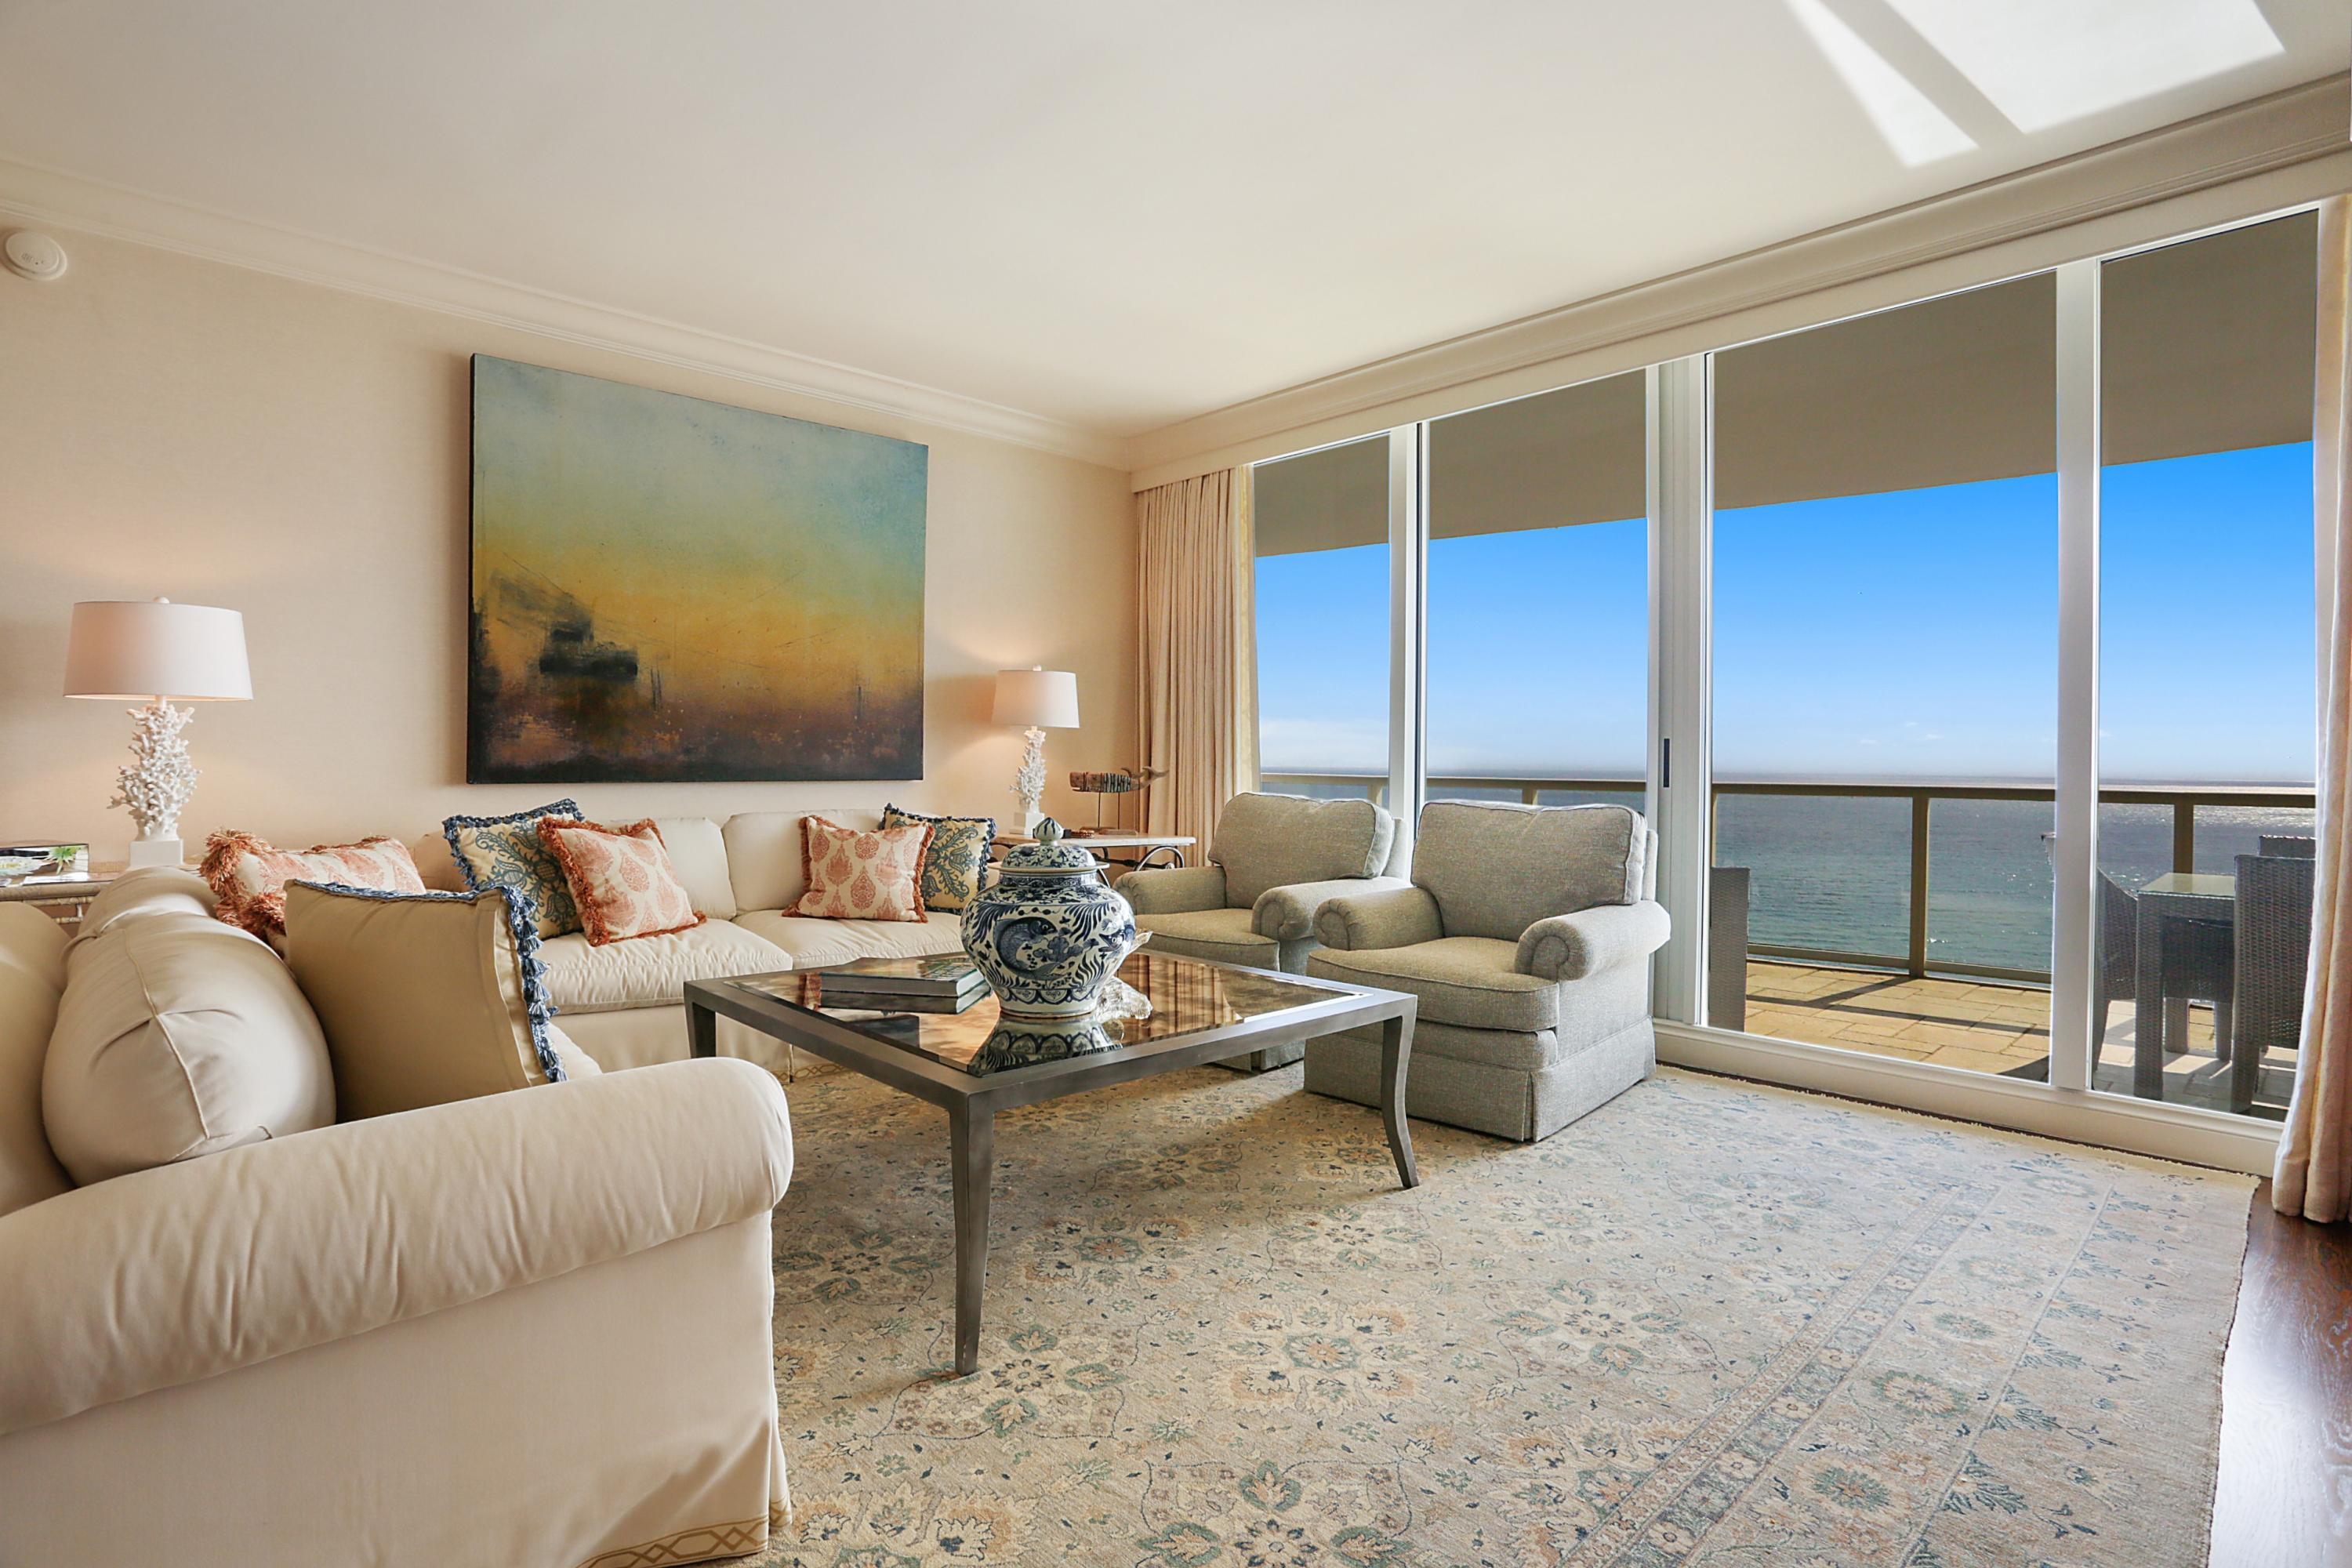 New Home for sale at 2700 Ocean Drive in Singer Island